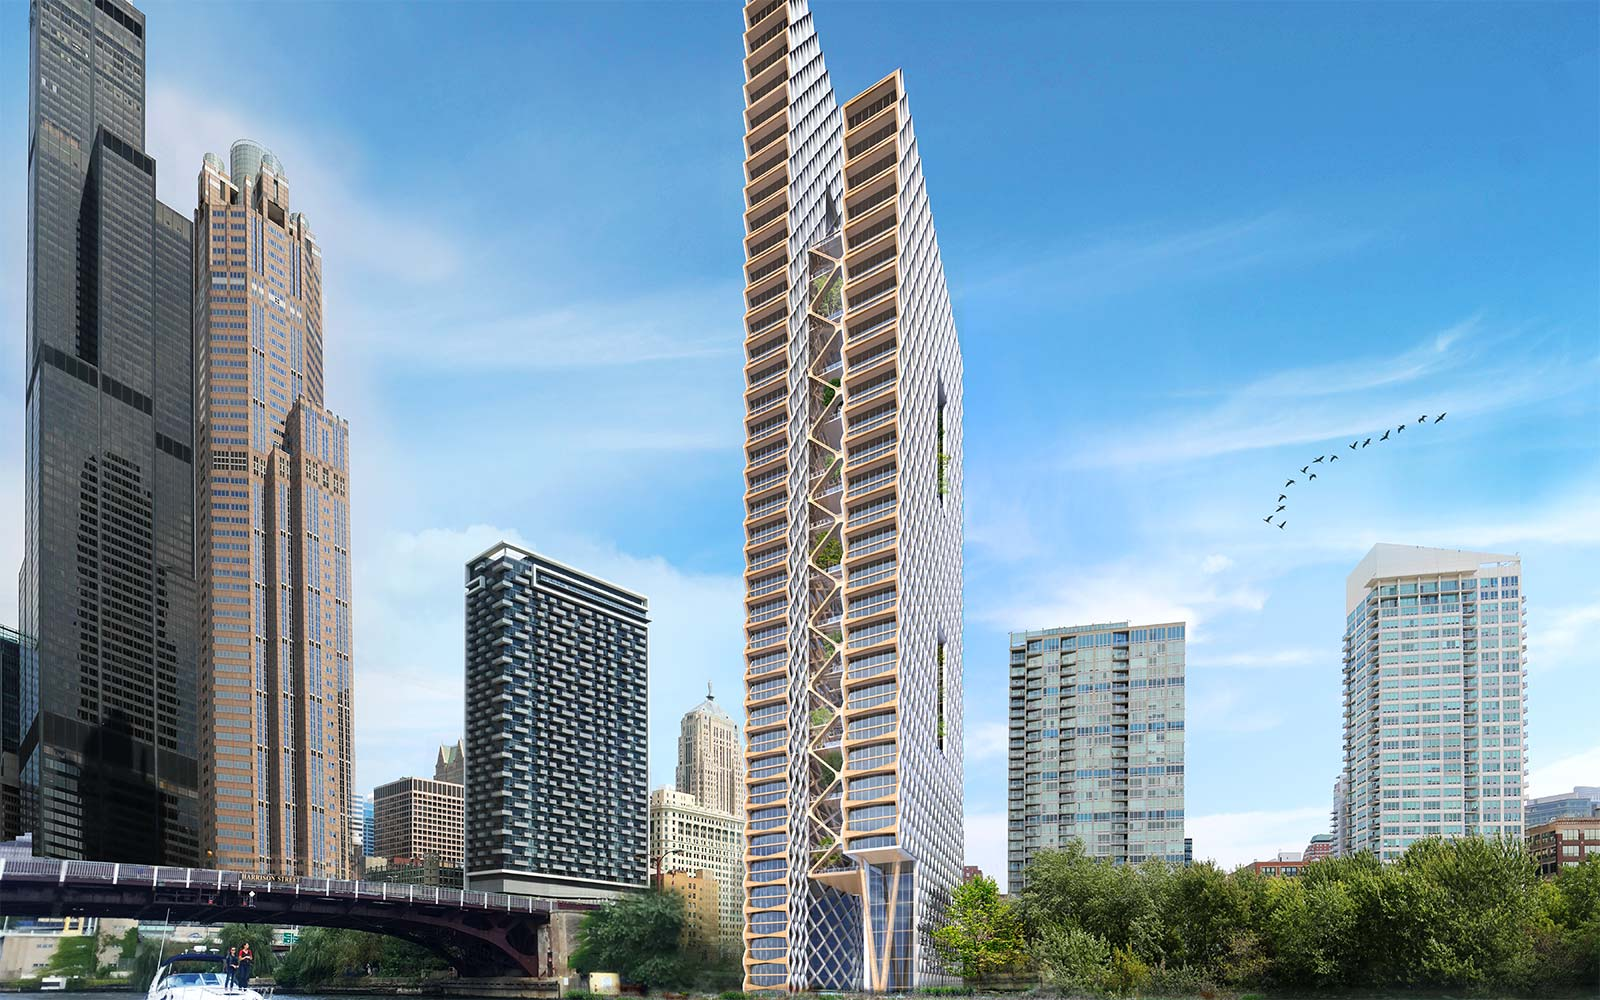 river beech tower architecture perkins and will design chicago illinois wooden skyscraper